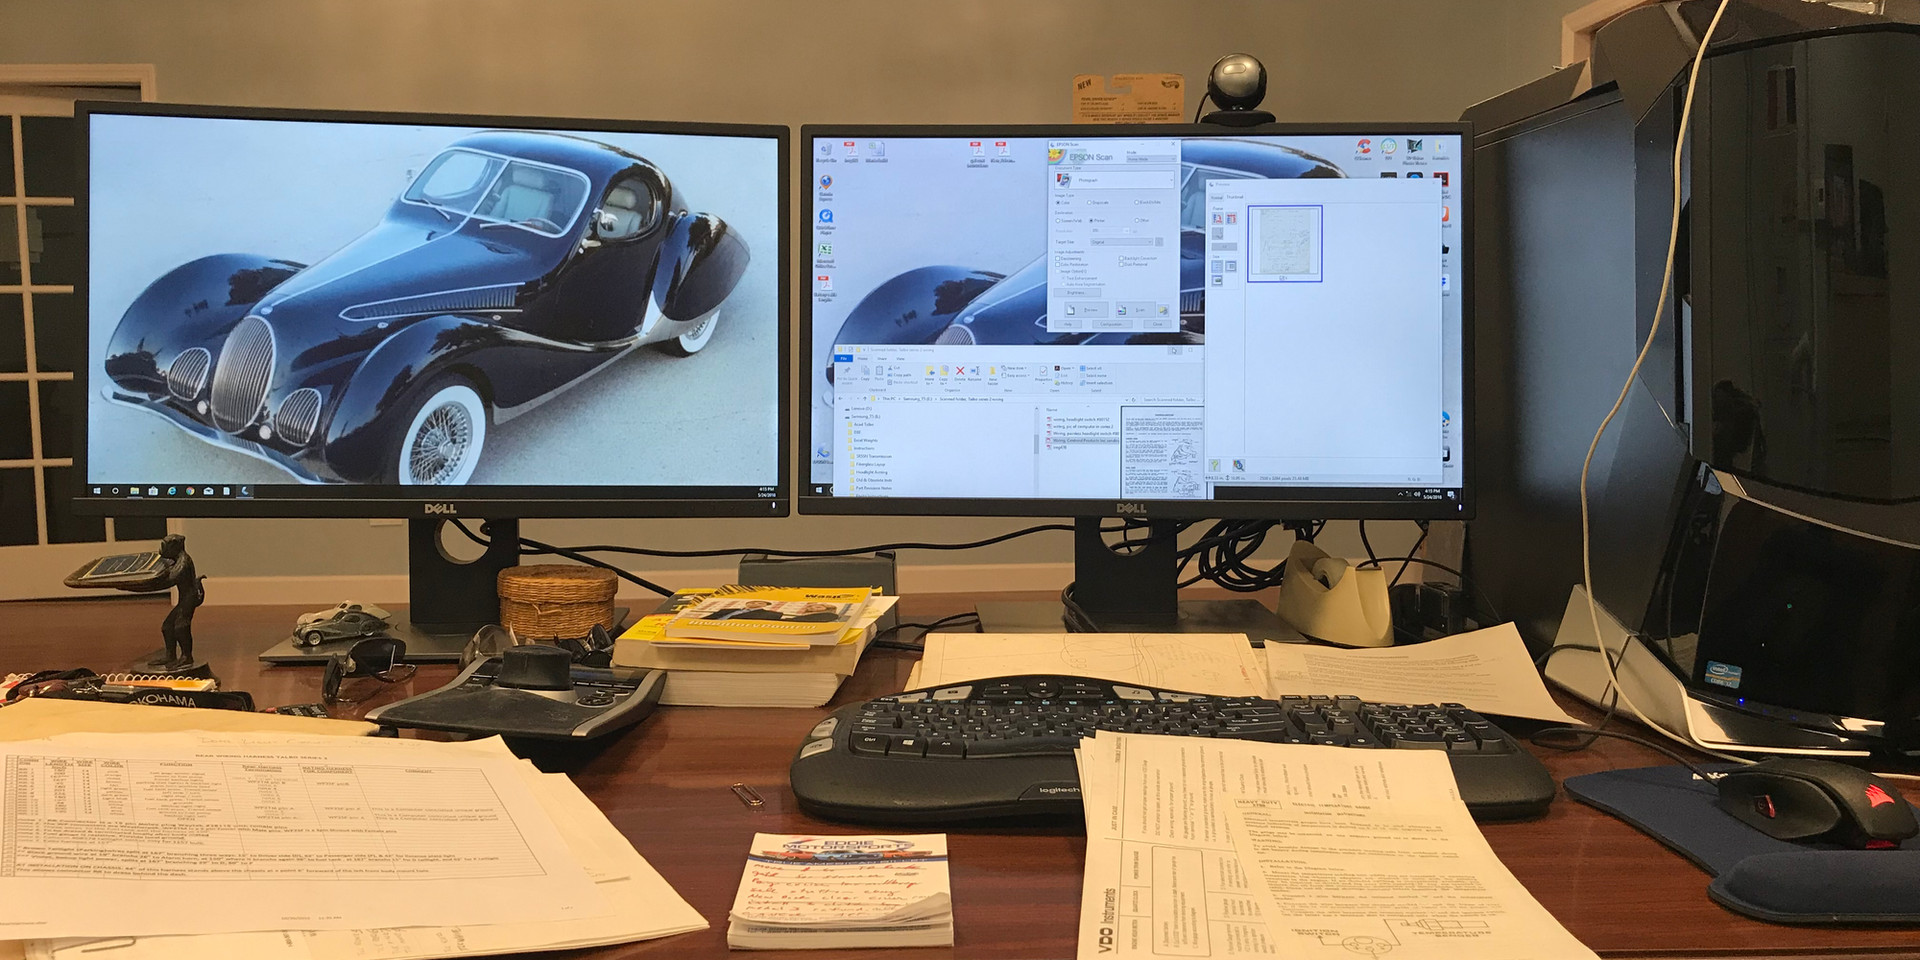 2 monitors, liquid cooled tower, latest Dell laptop, Solidworks.